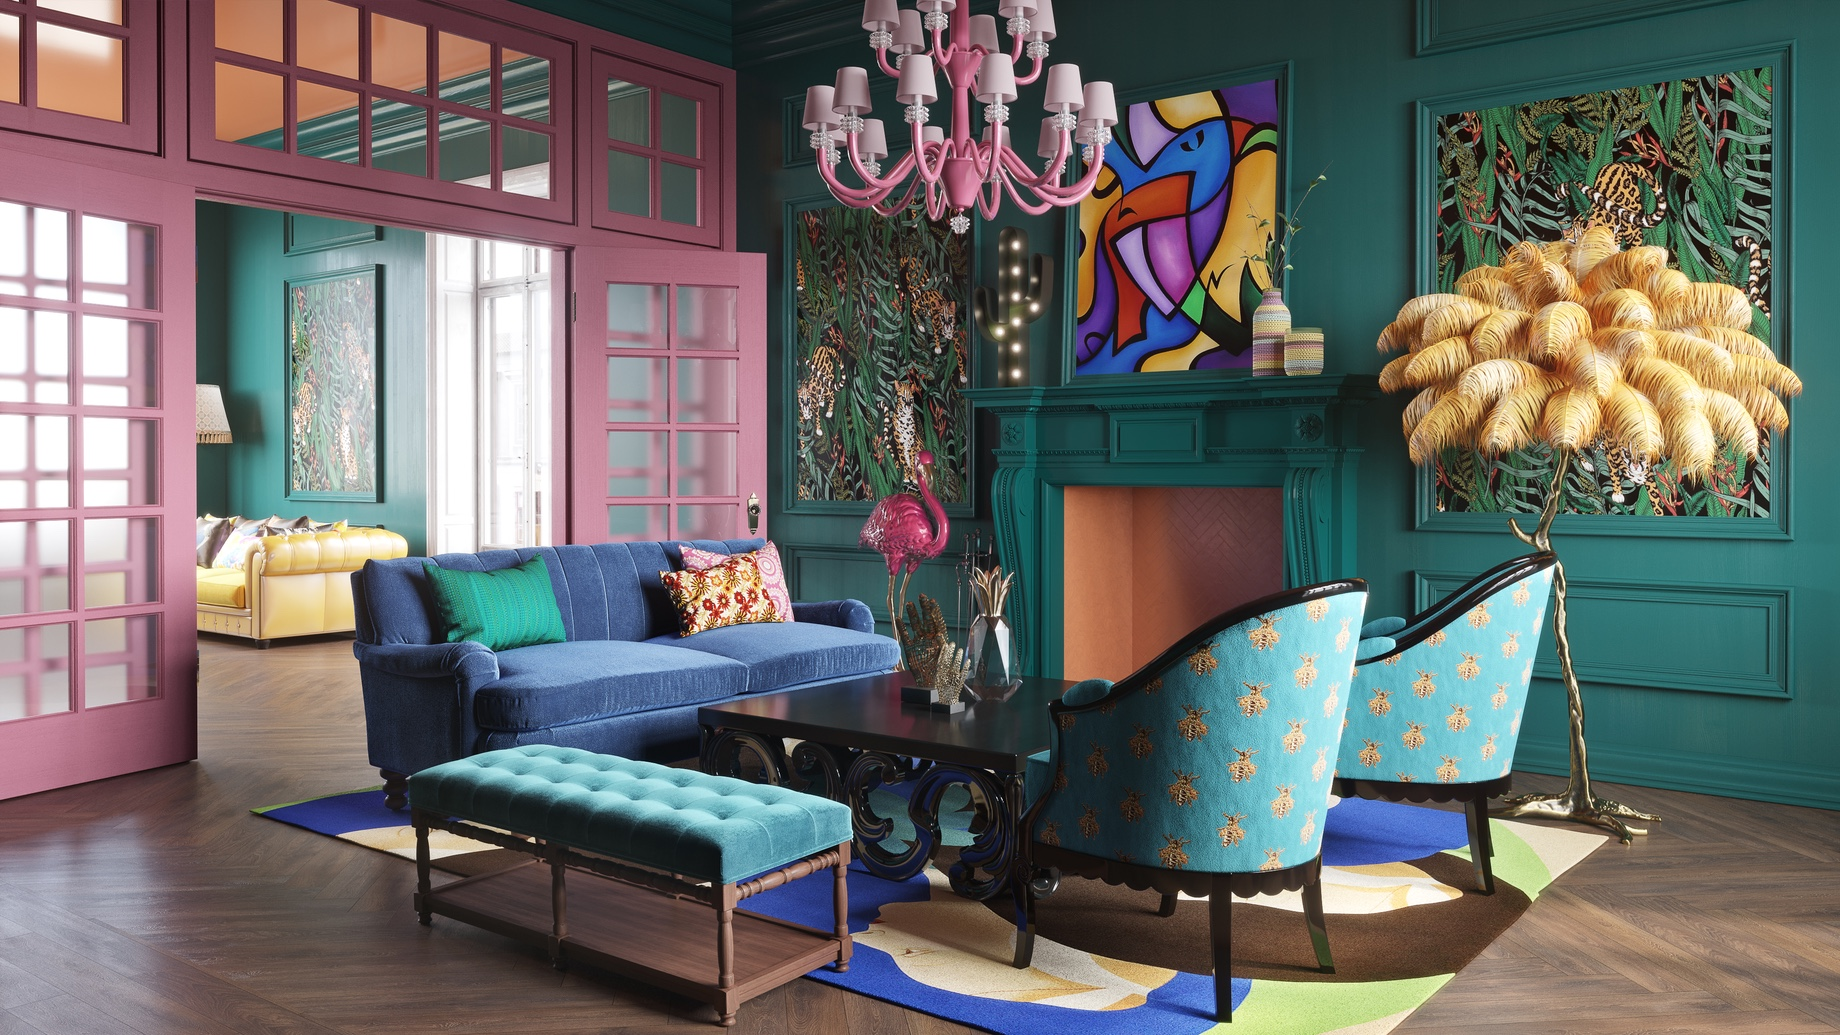 Bold Wall Paints and Printed Wallpapers - Top 6 Interior Design Trends for Luxury Living in California